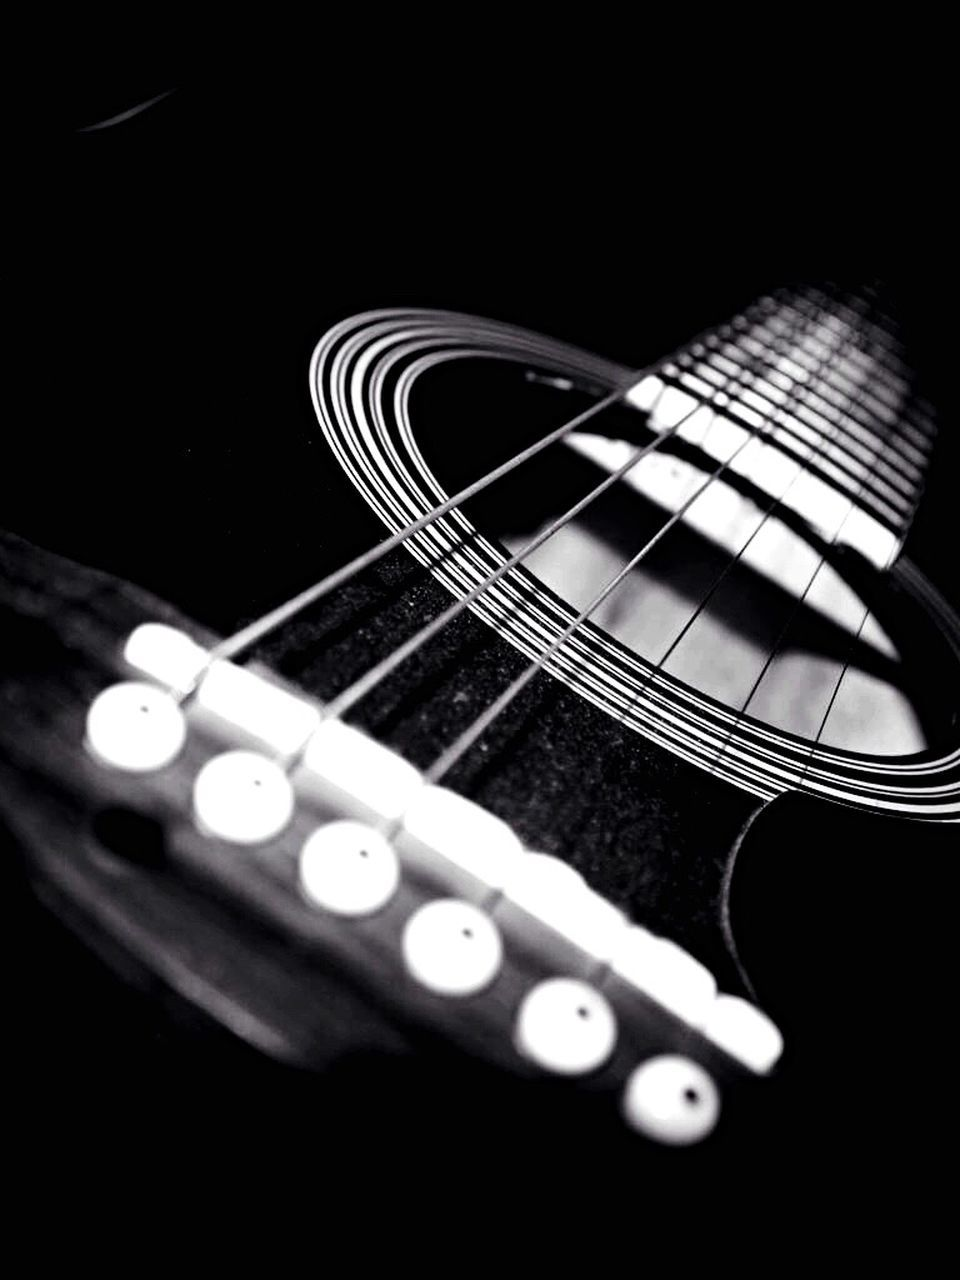 music, musical instrument, musical instrument string, guitar, arts culture and entertainment, musical equipment, fretboard, woodwind instrument, black background, string instrument, acoustic guitar, still life, close-up, no people, indoors, studio shot, classical music